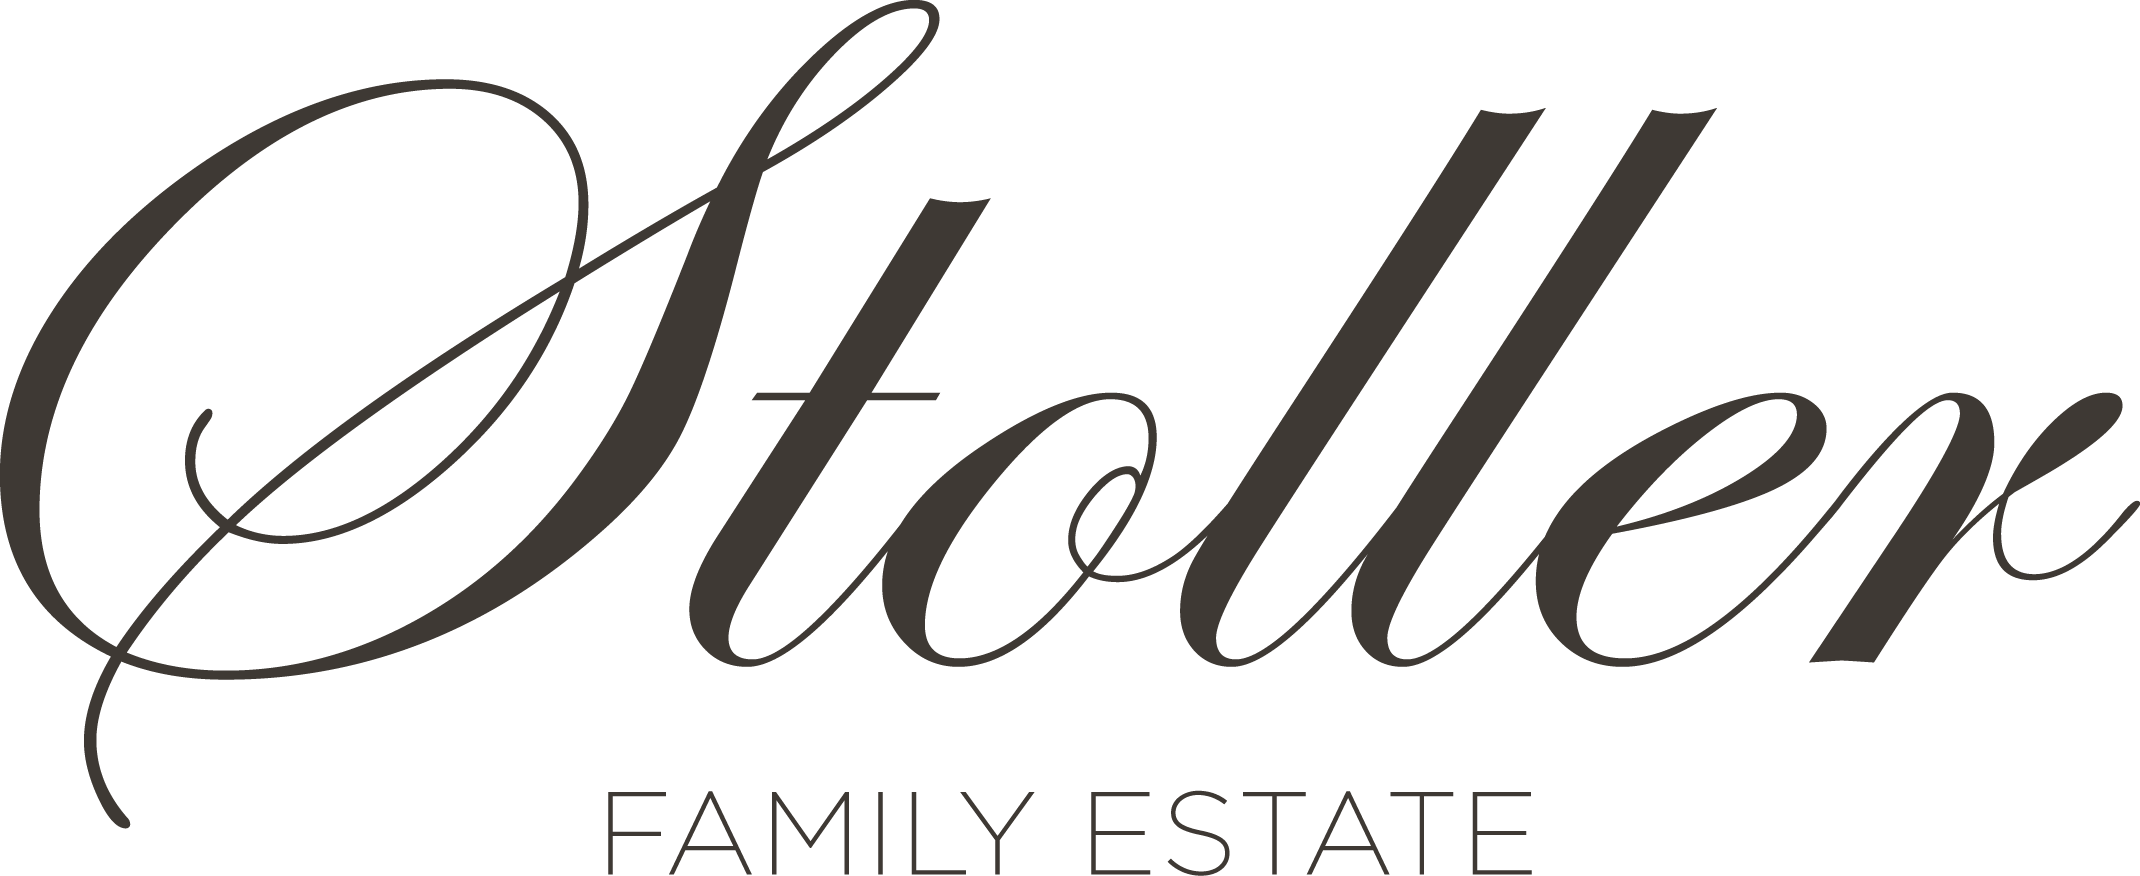 Logo for Stoller Family Estate